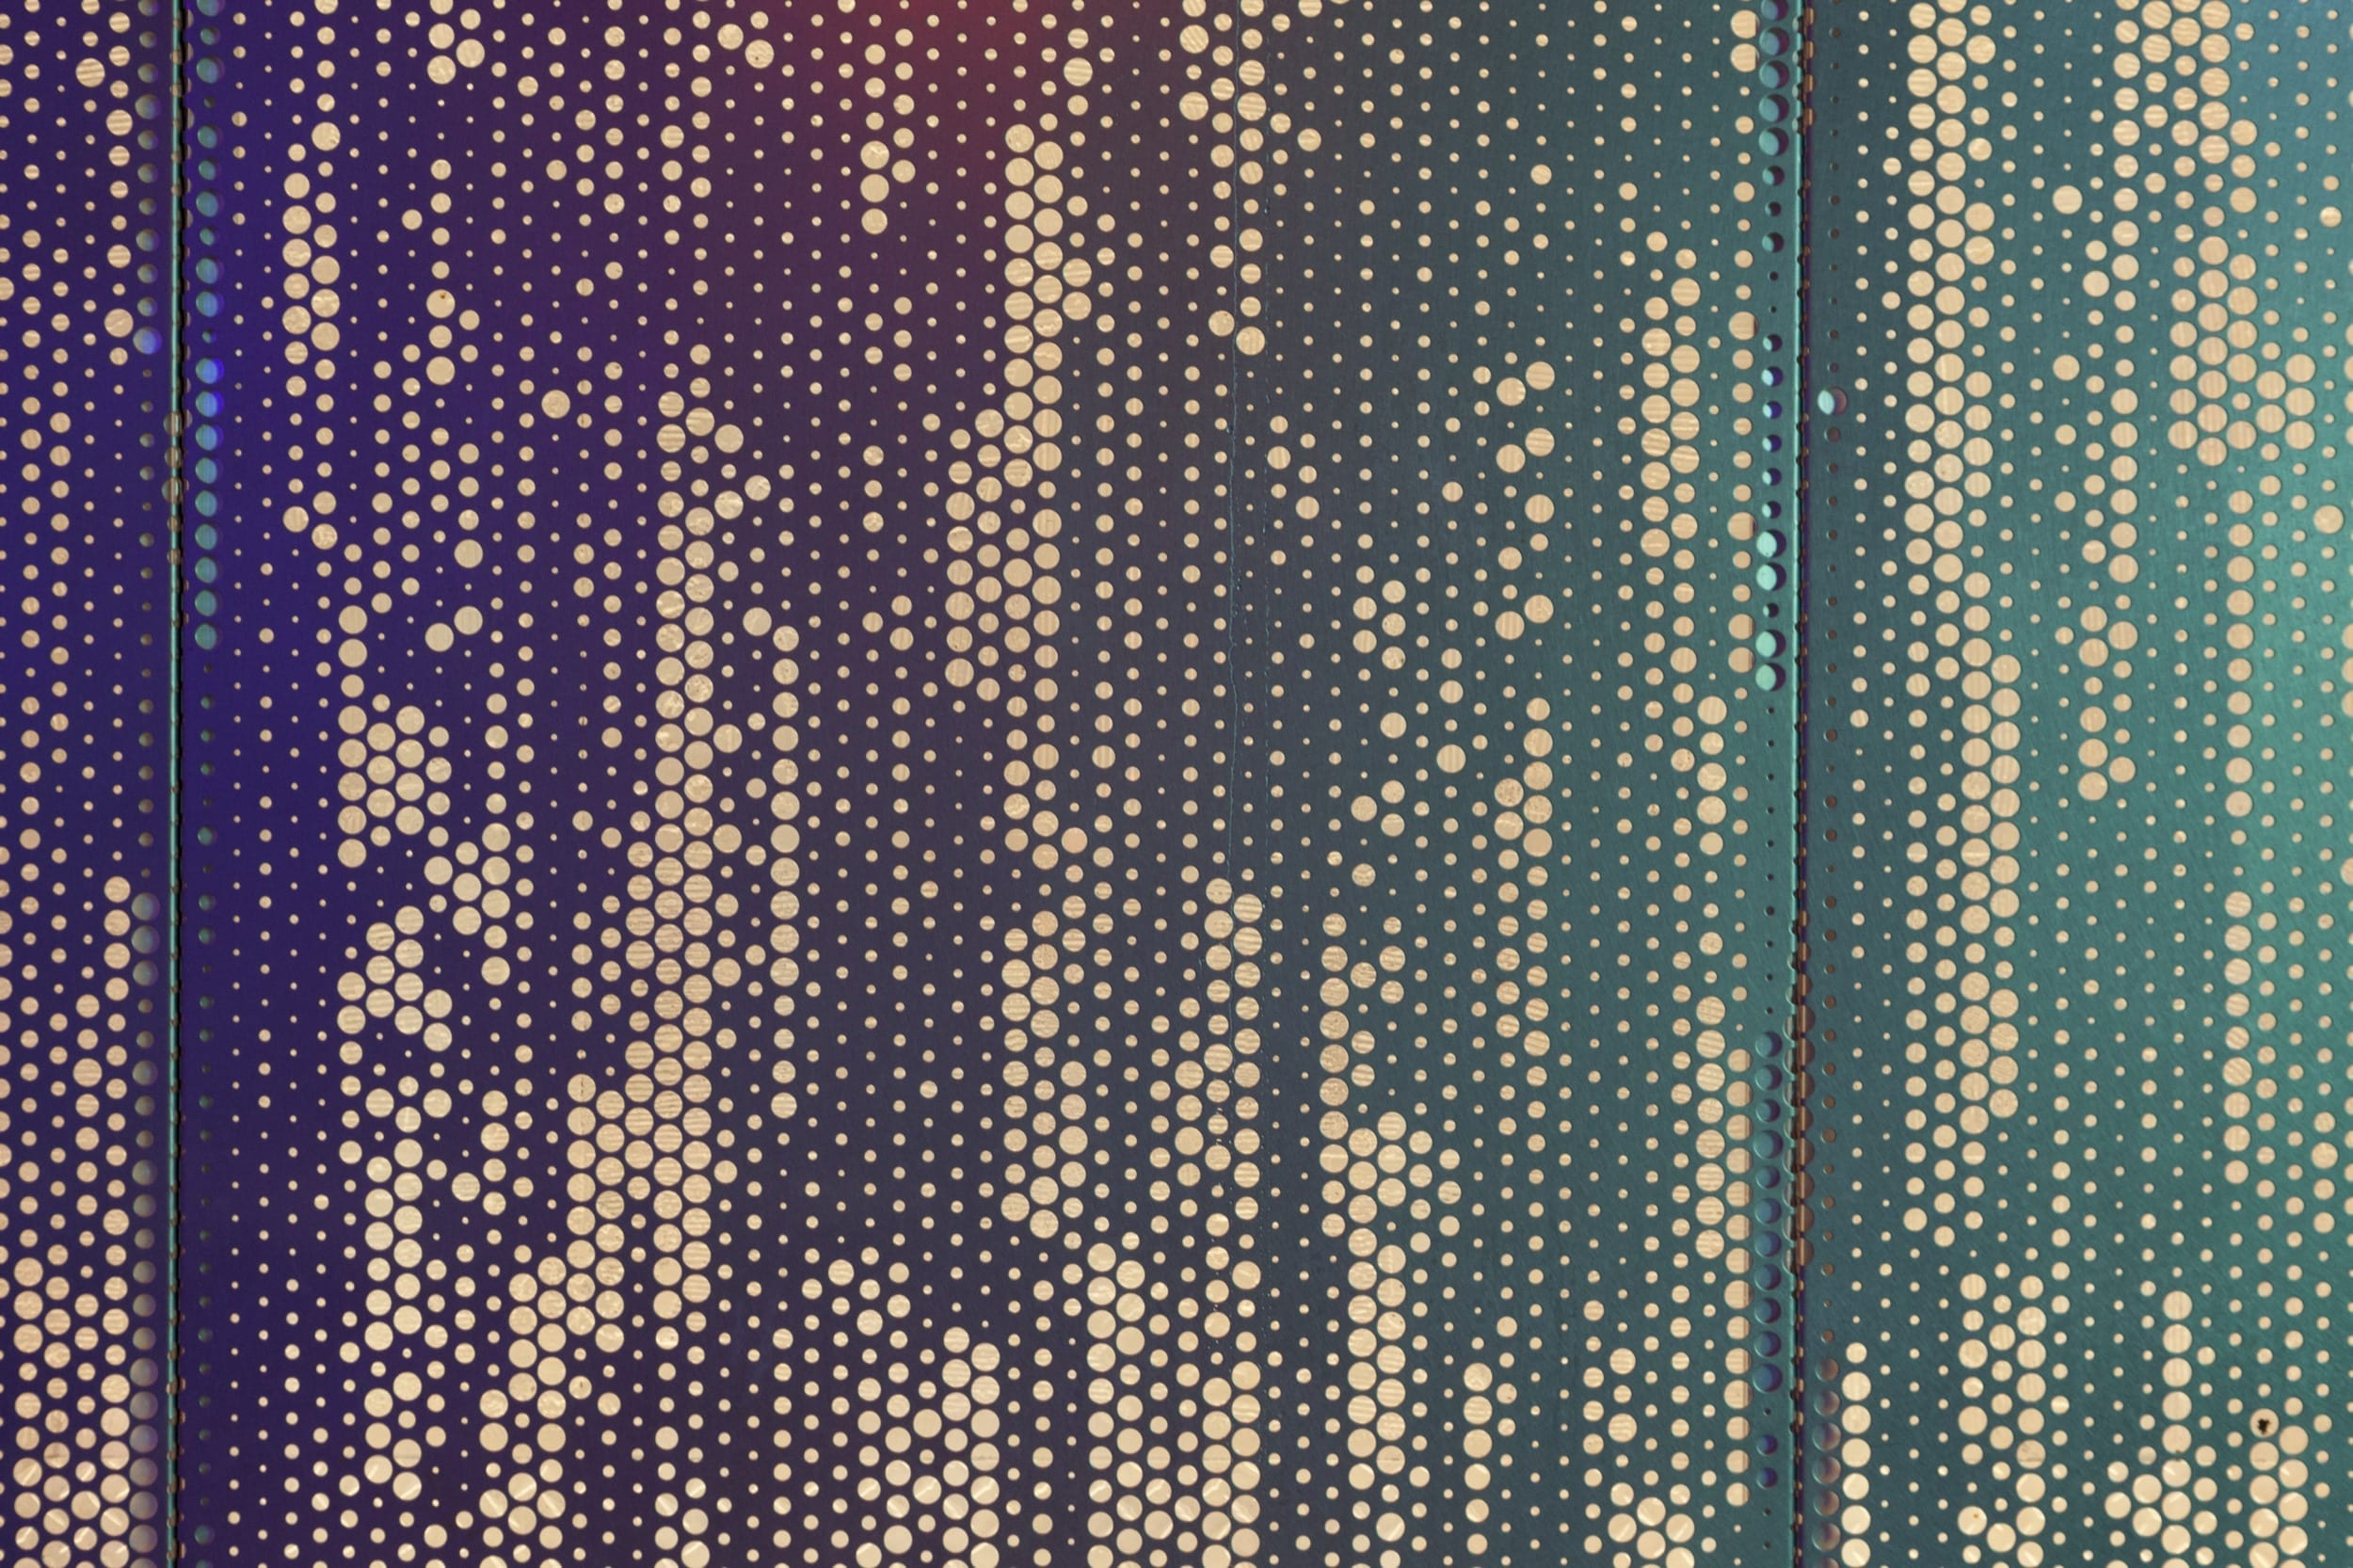 A close-up view of an abstract ImageWall pattern.